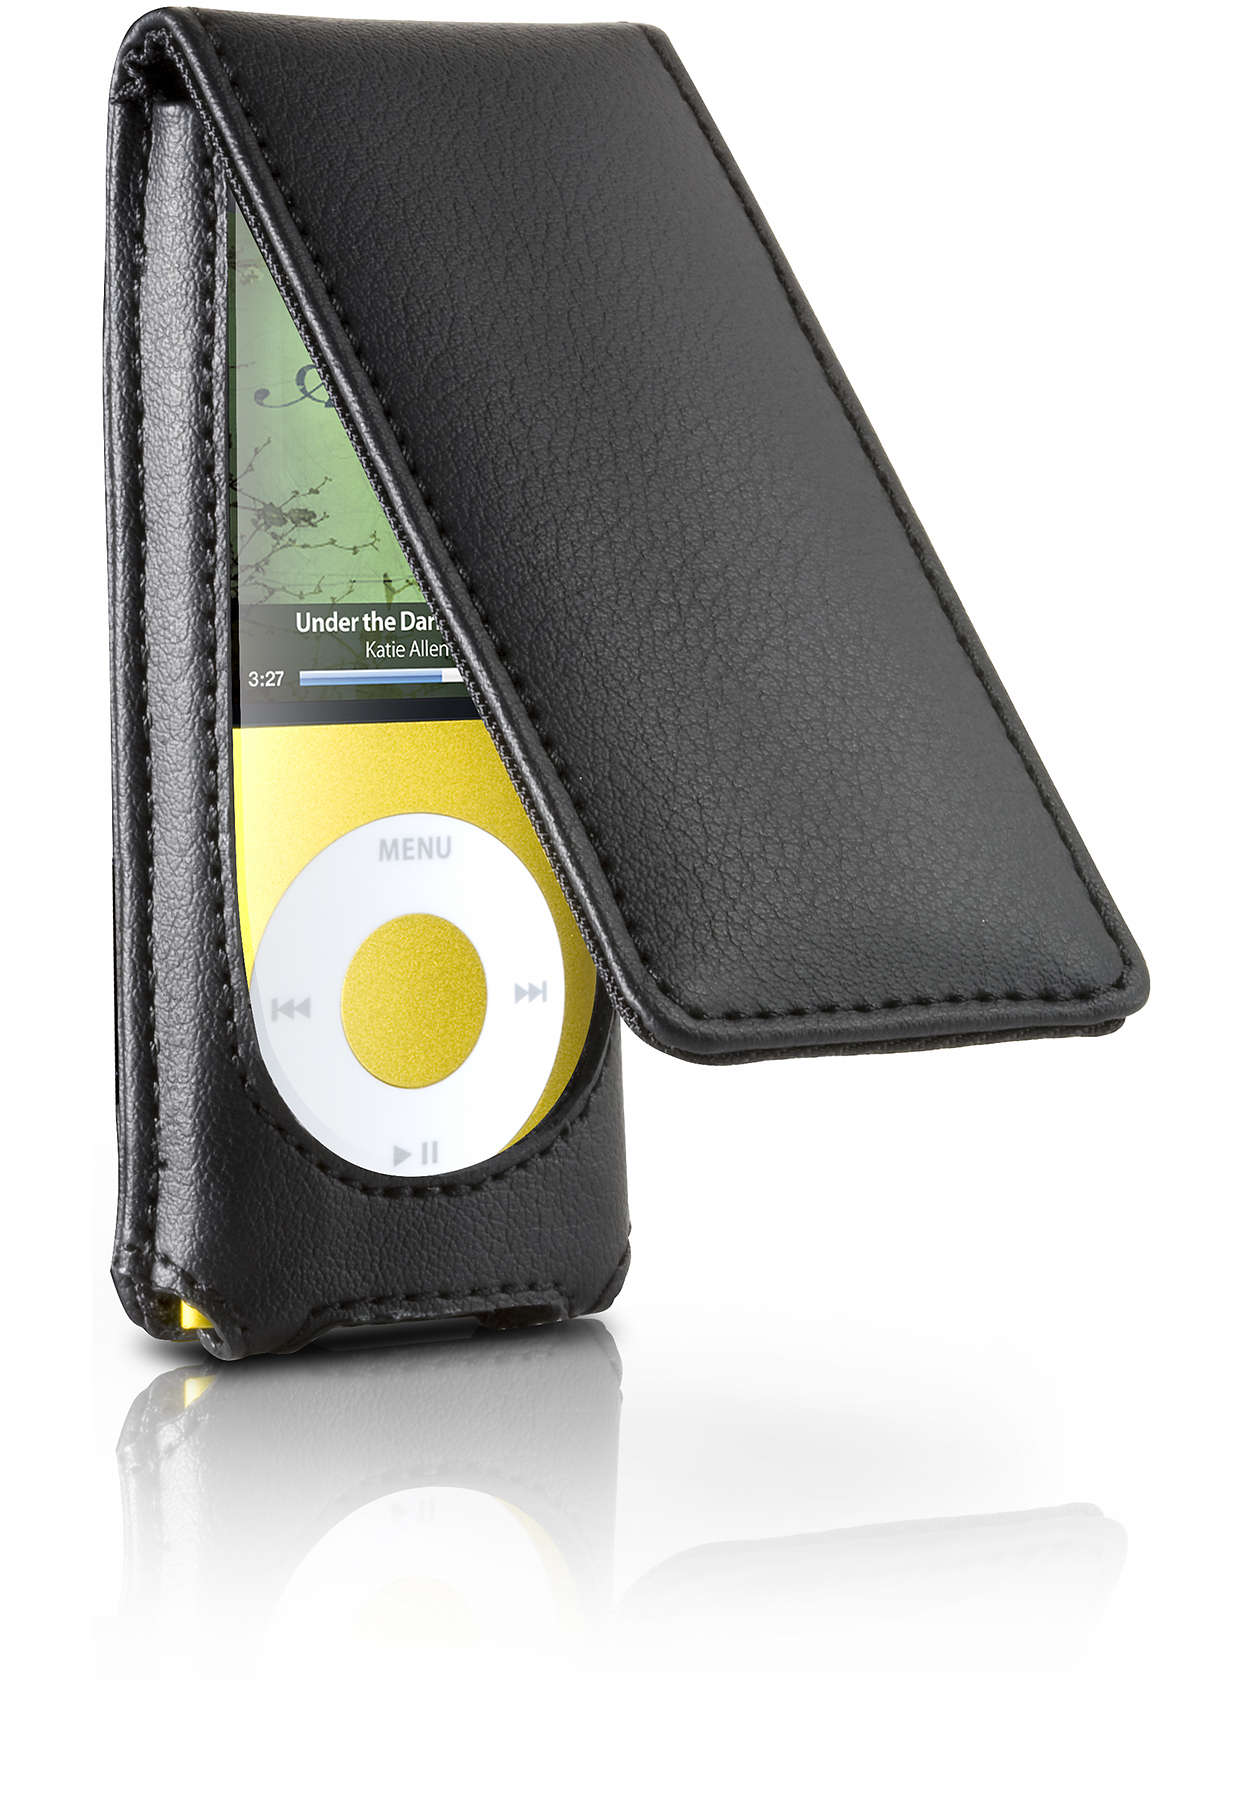 Carry your iPod in style